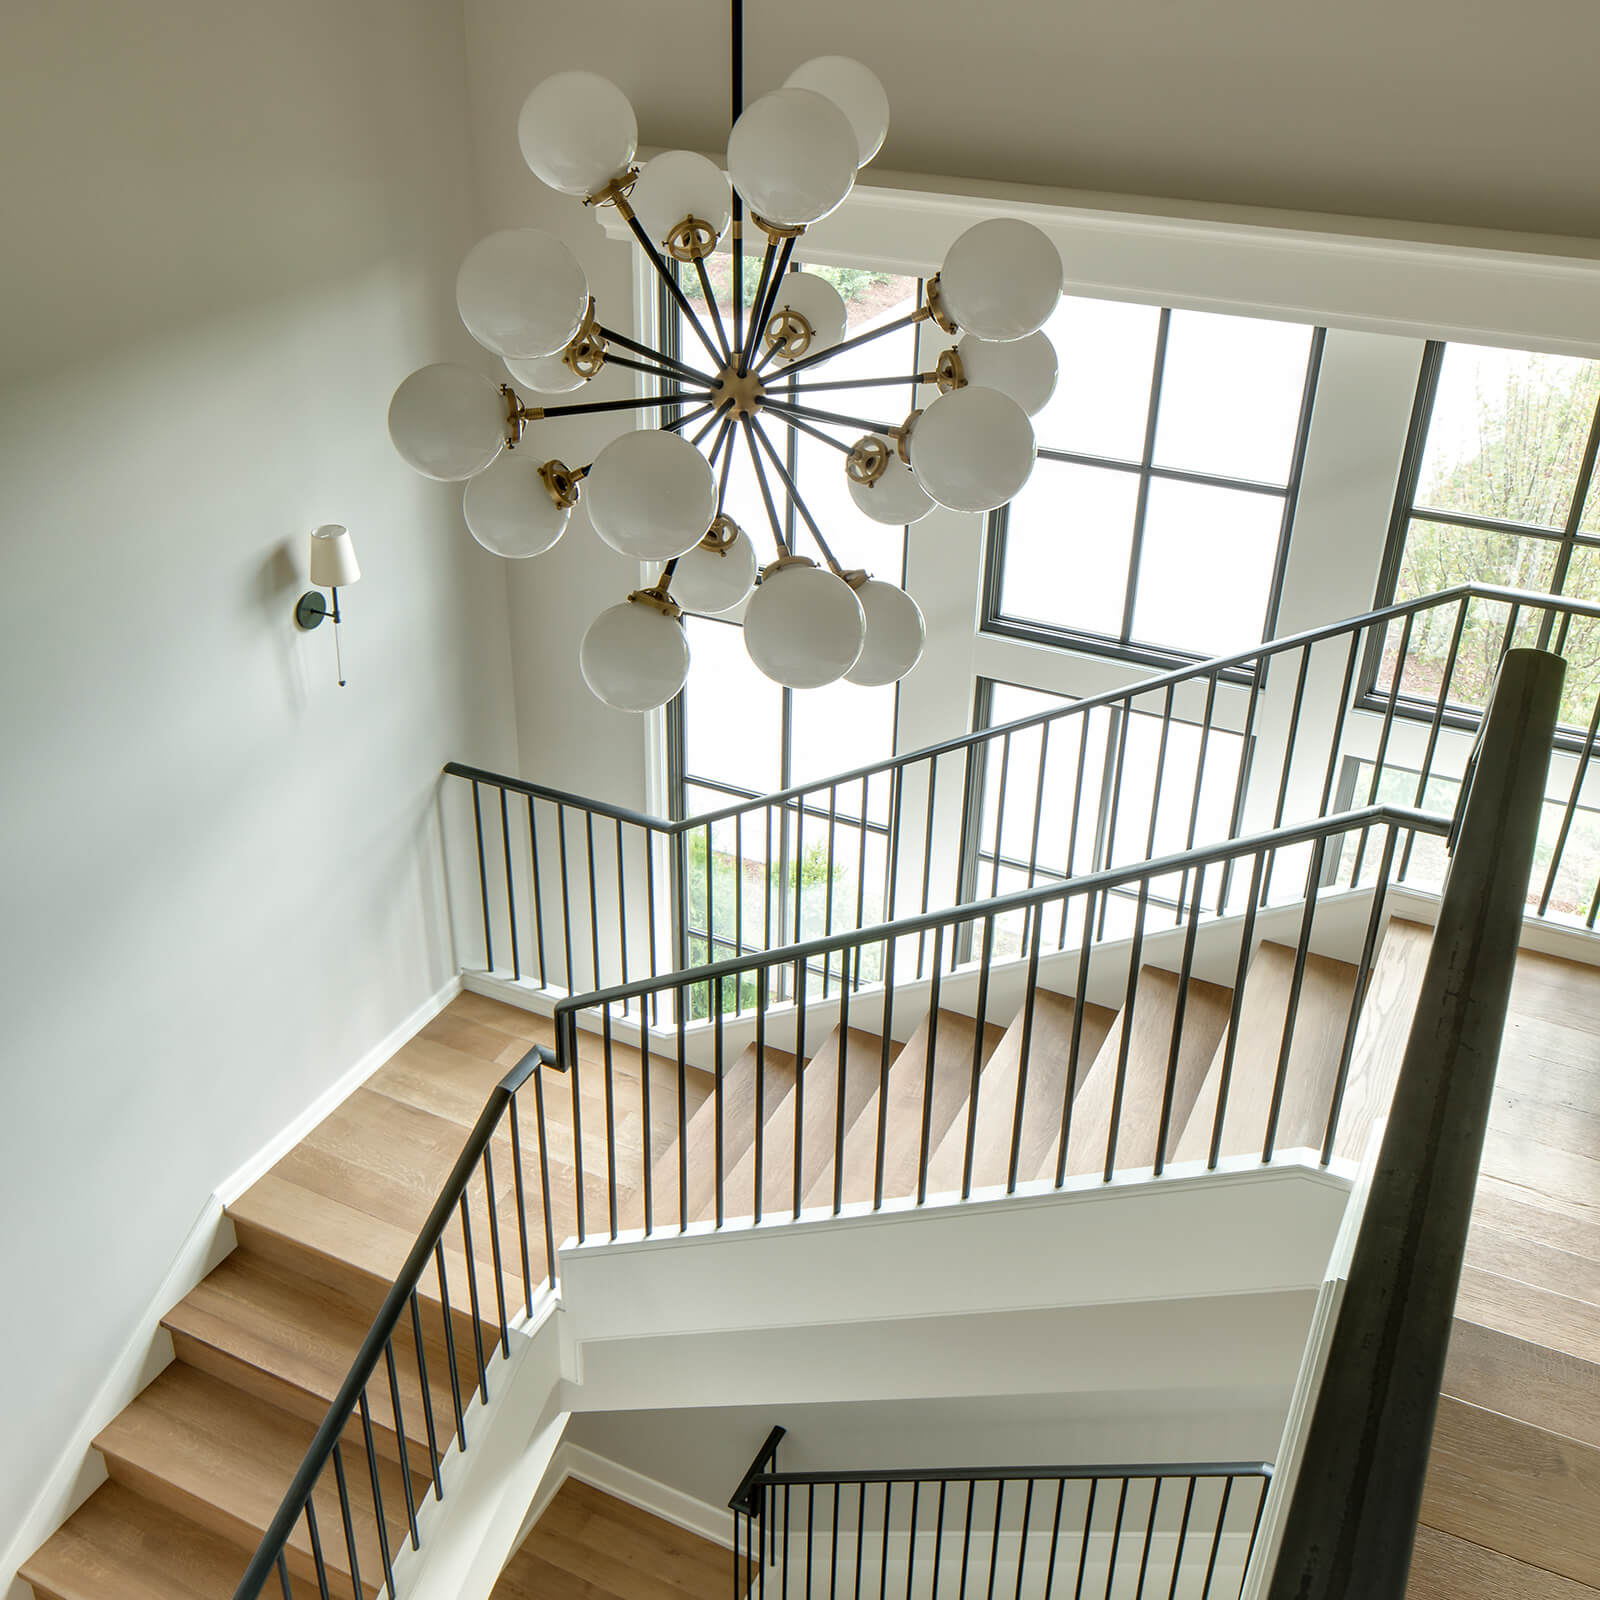 Interior stairwell view looking out to Marvin Signature Ultimate Casement Windows